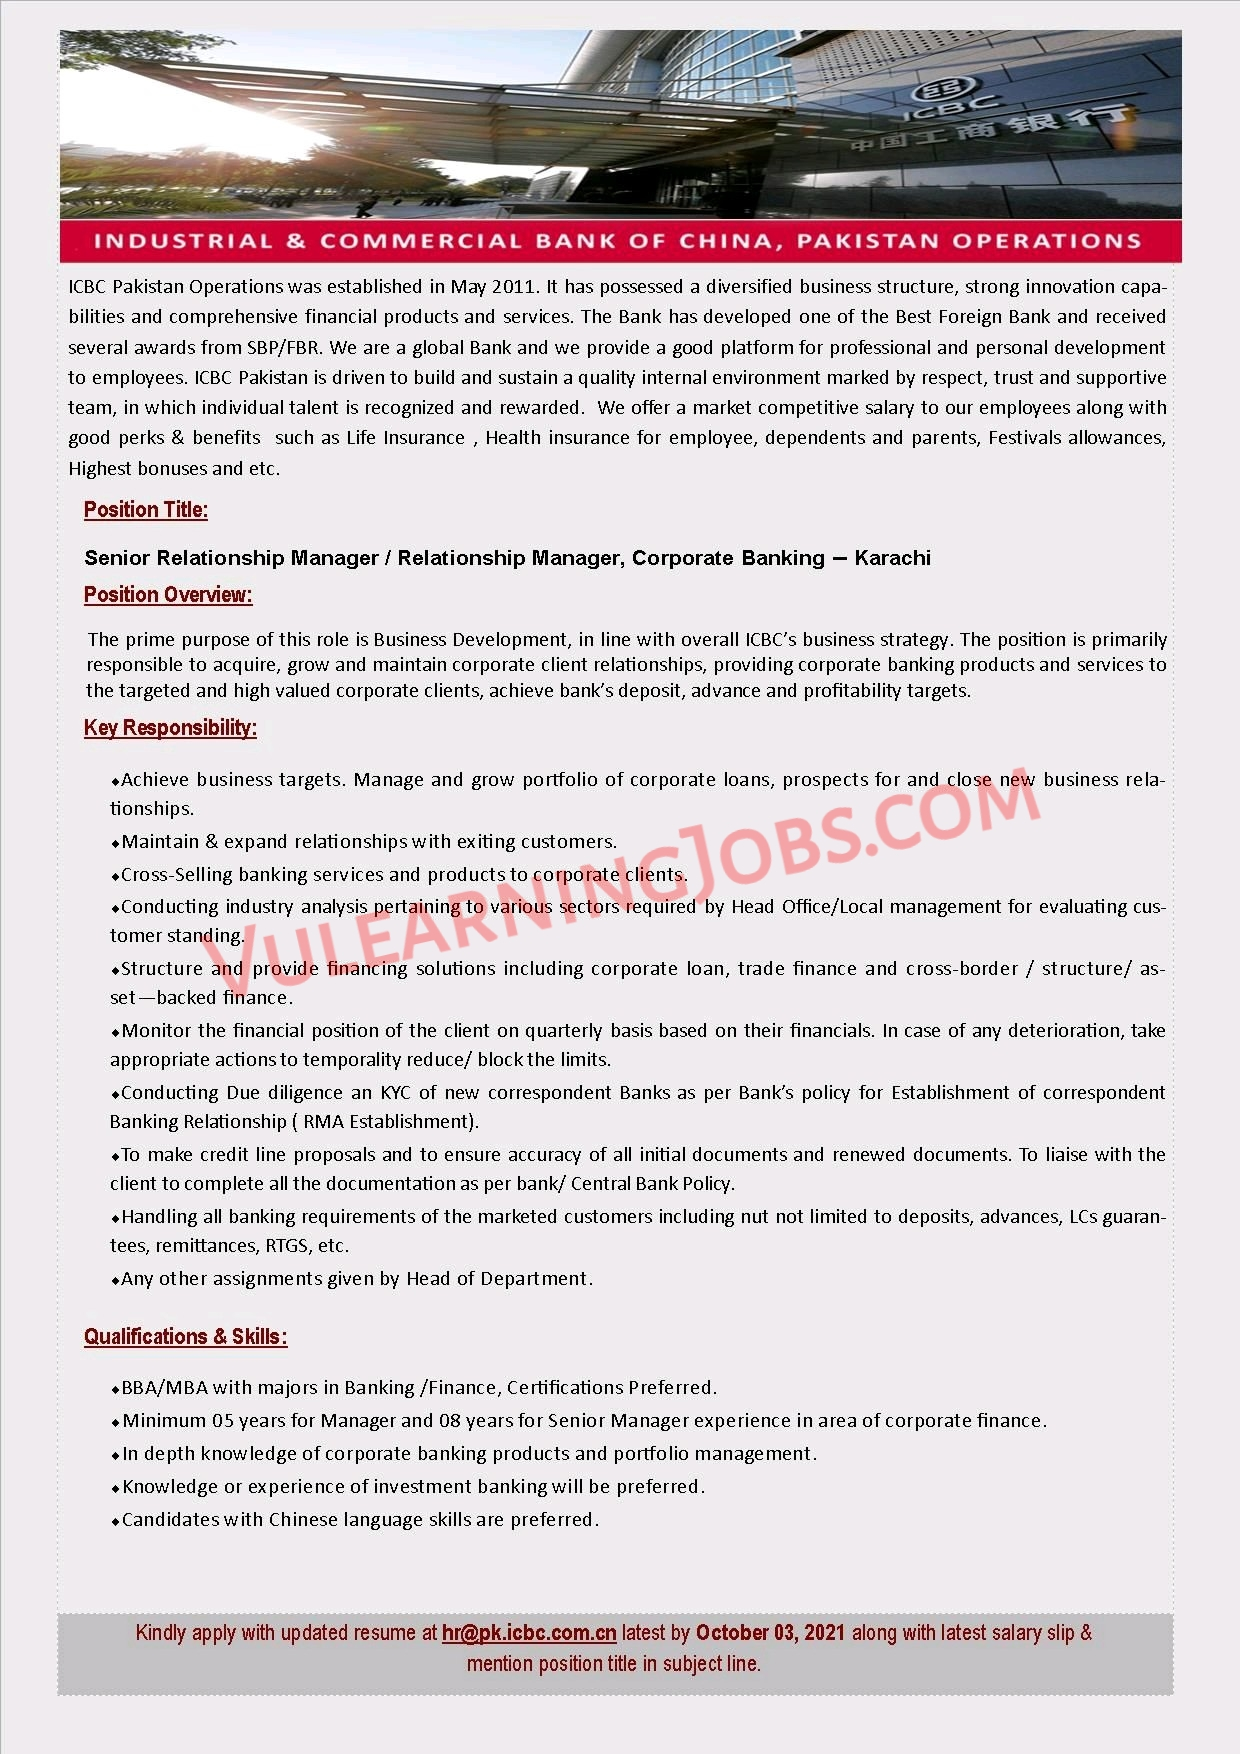 ICBC Ltd Pakistan Operations Jobs September 2021 For Relationship Manager & Manager Trade Latest